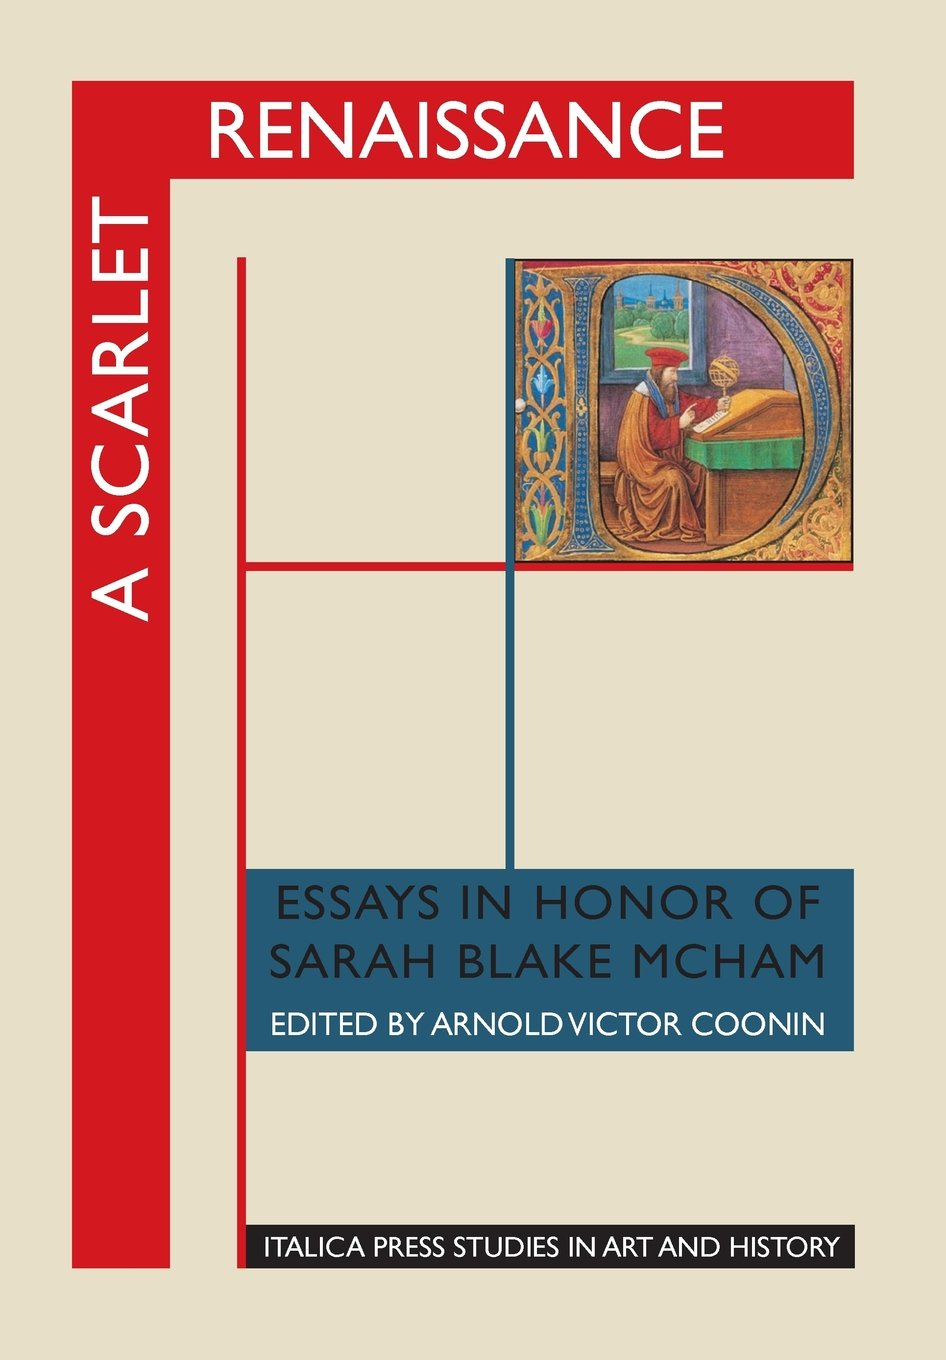 renaissance essays humanism and the renaissance essays catalogue  a scarlet renaissance essays in honor of sarah blake mcham a scarlet renaissance essays in honor